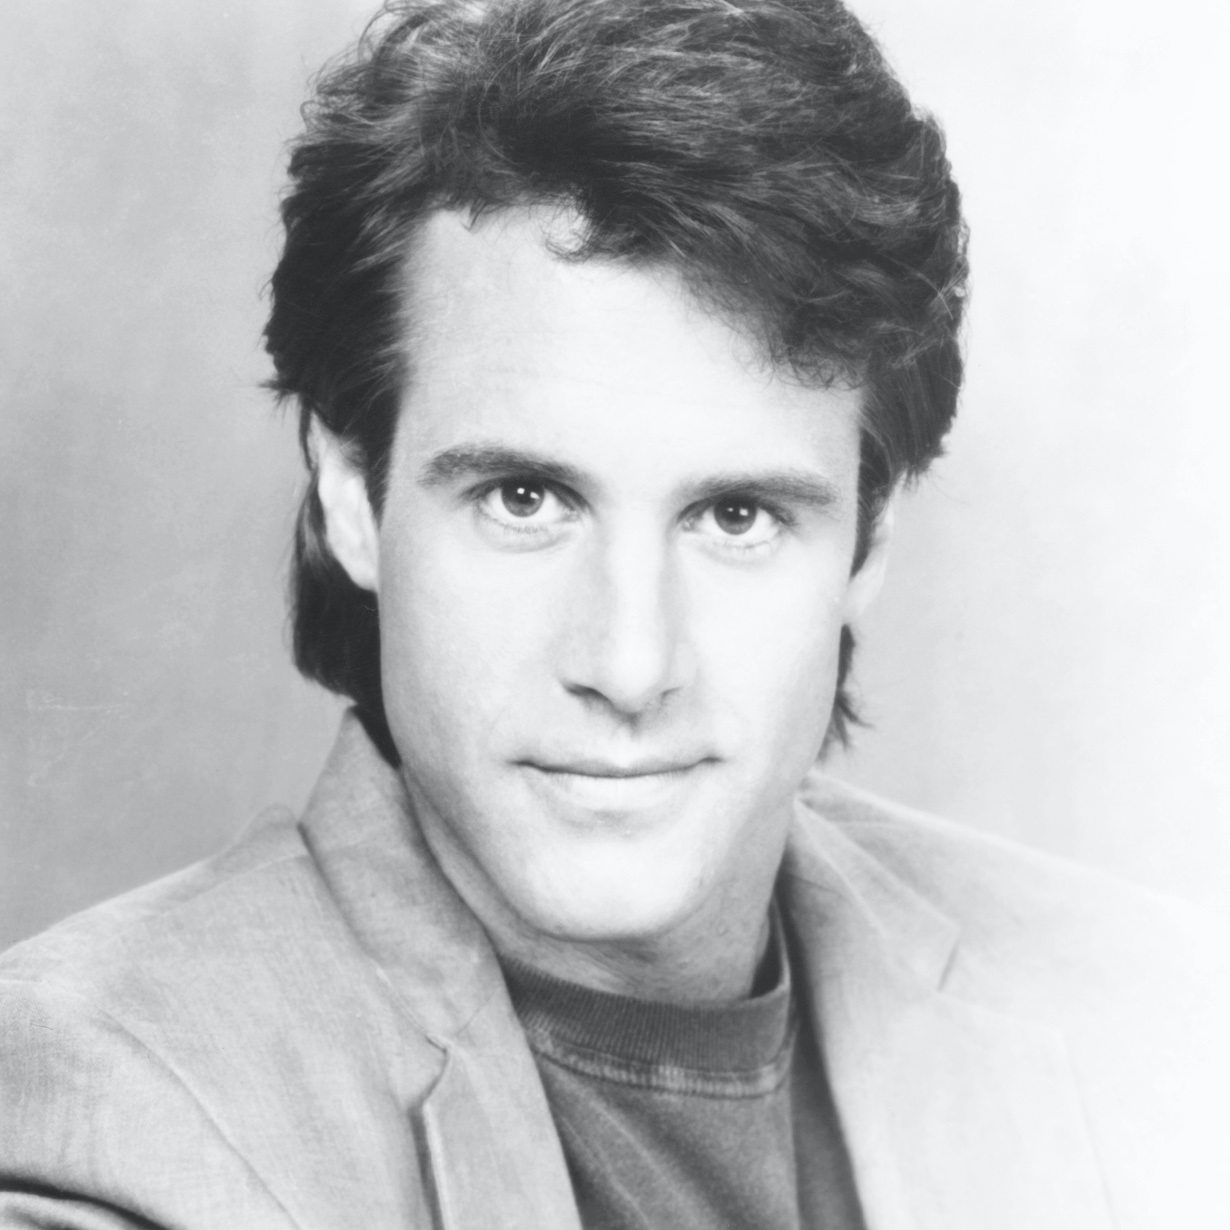 THE BOLD AND THE BEAUTIFUL, Todd McKee, 1987-, © CBS/courtesy Everett Collection